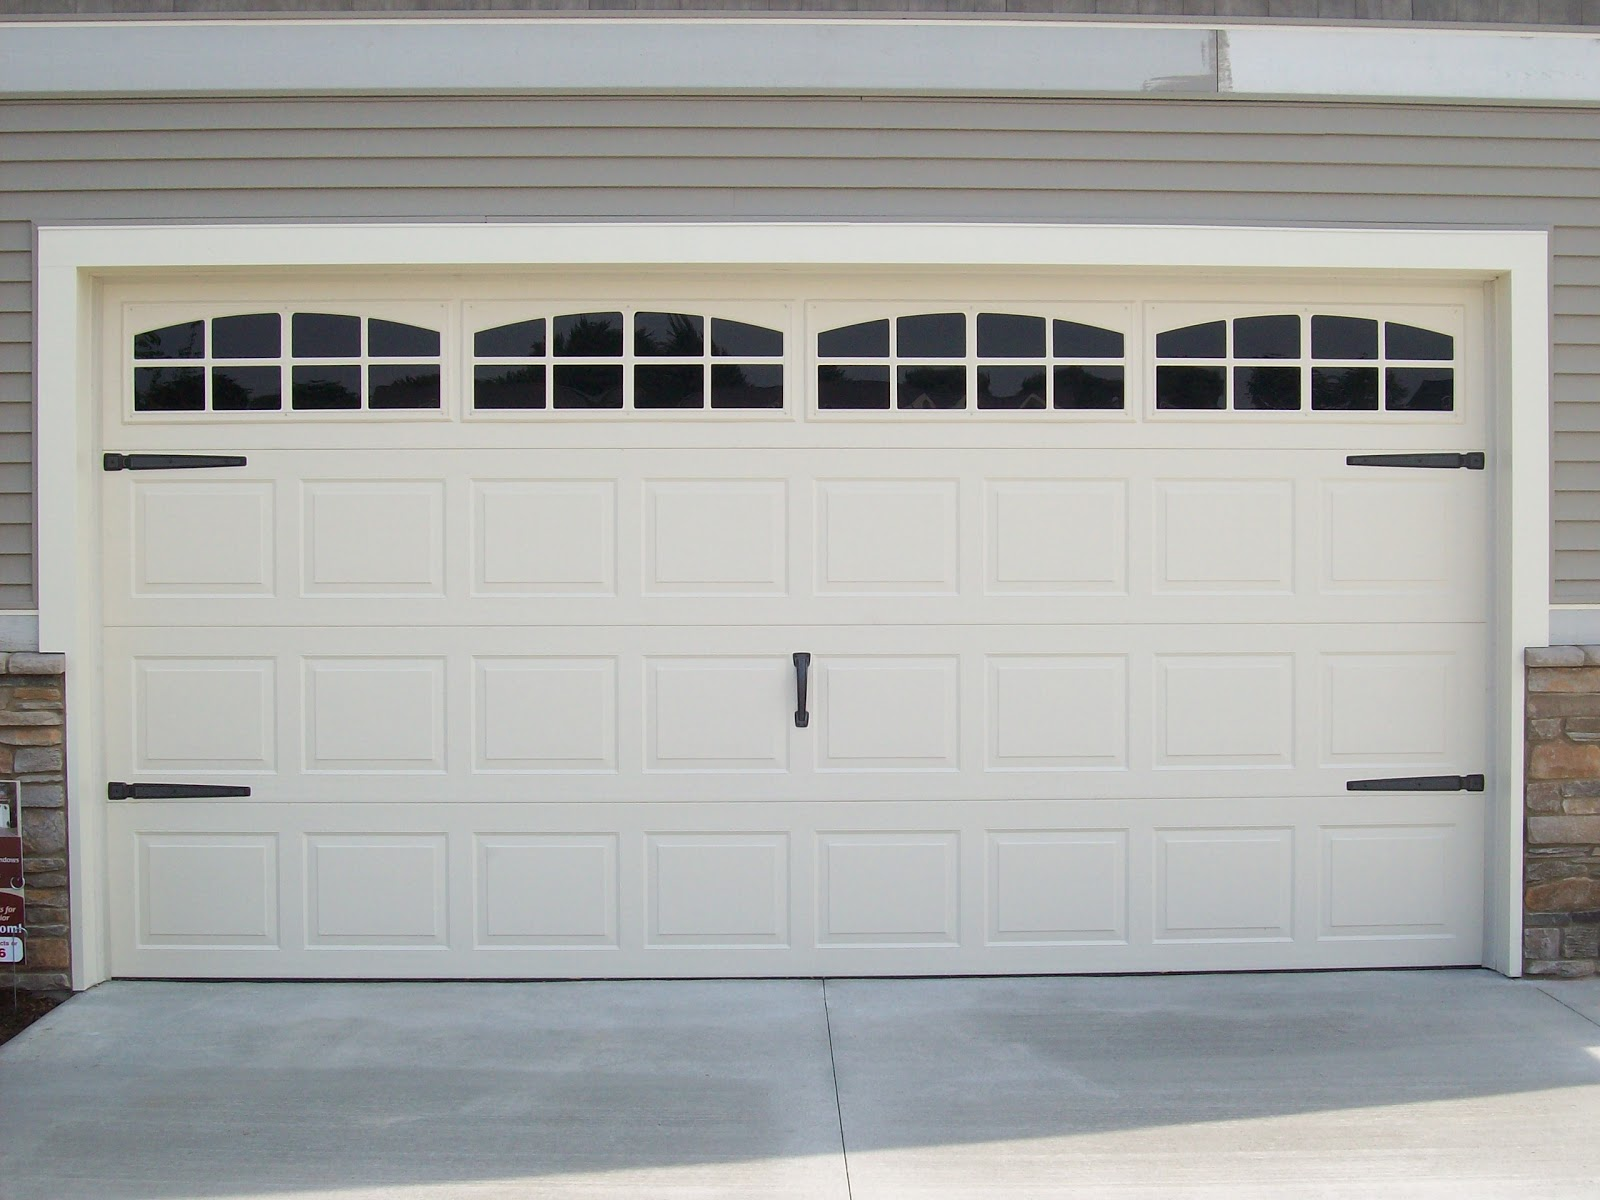 Decorative garage door windows 2017 2018 best cars reviews for Coach house garage prices